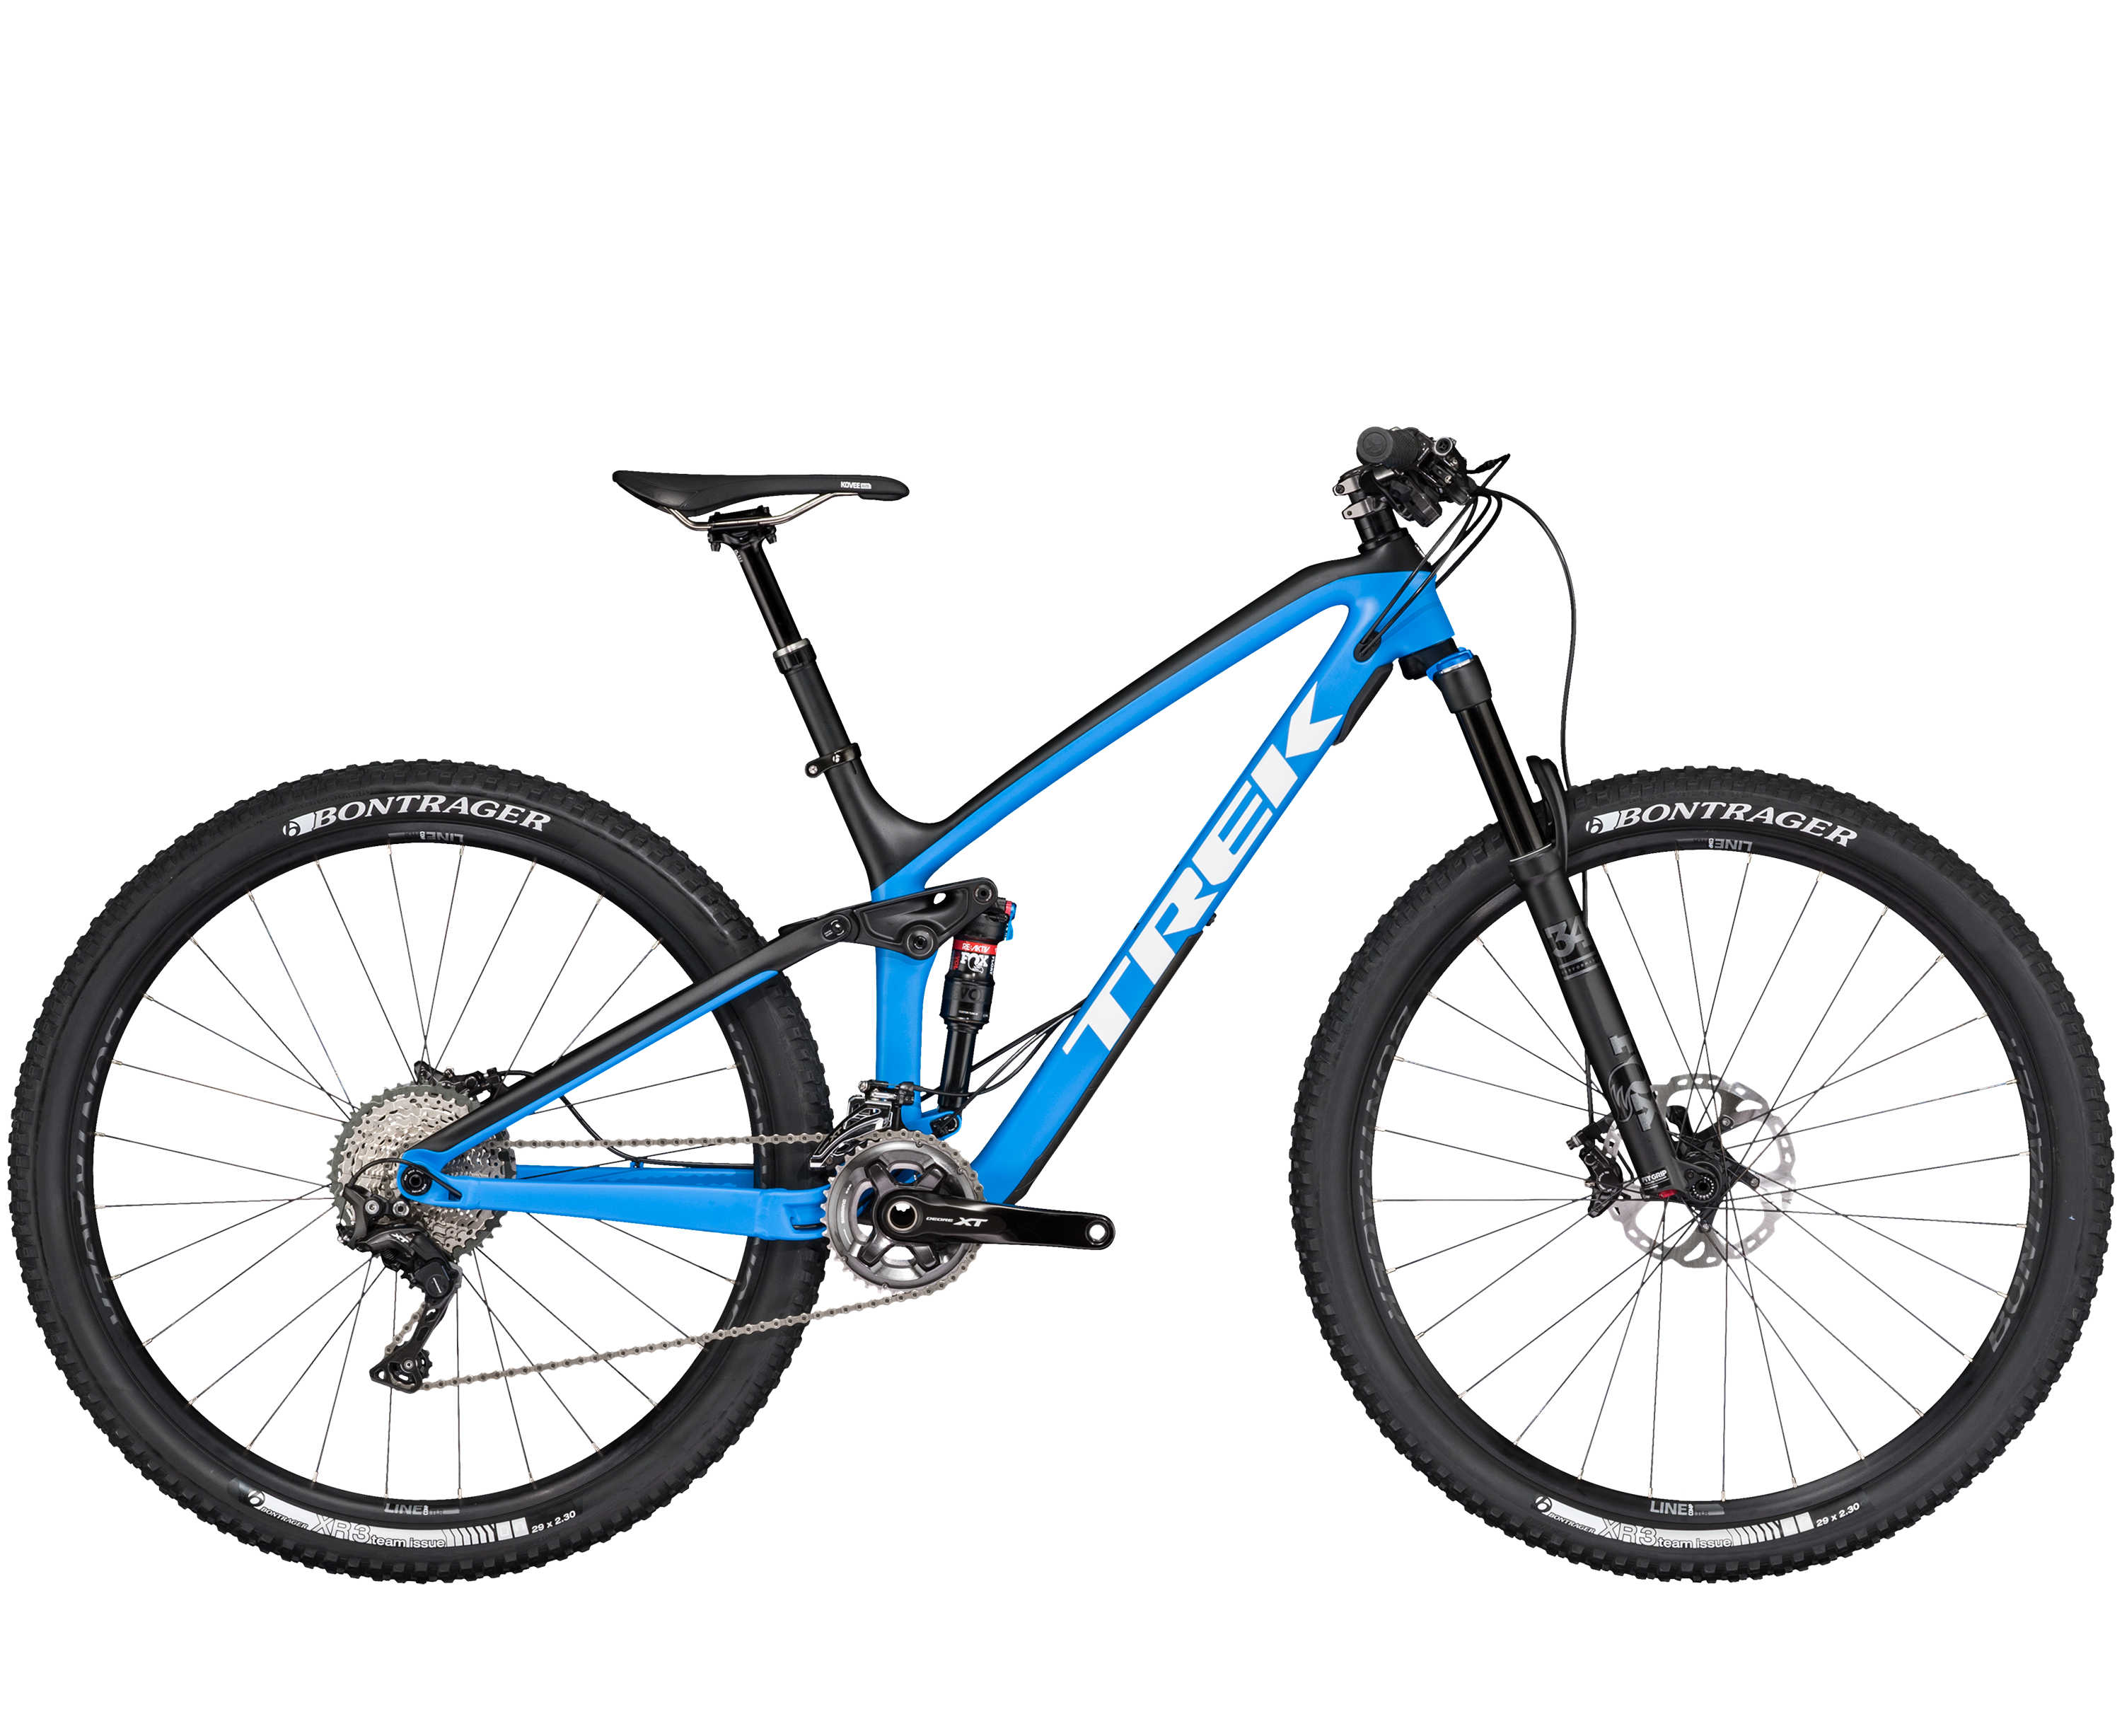 Trek Fuel EX 9.8 29 Matte Blue/Black/White-P1 2017